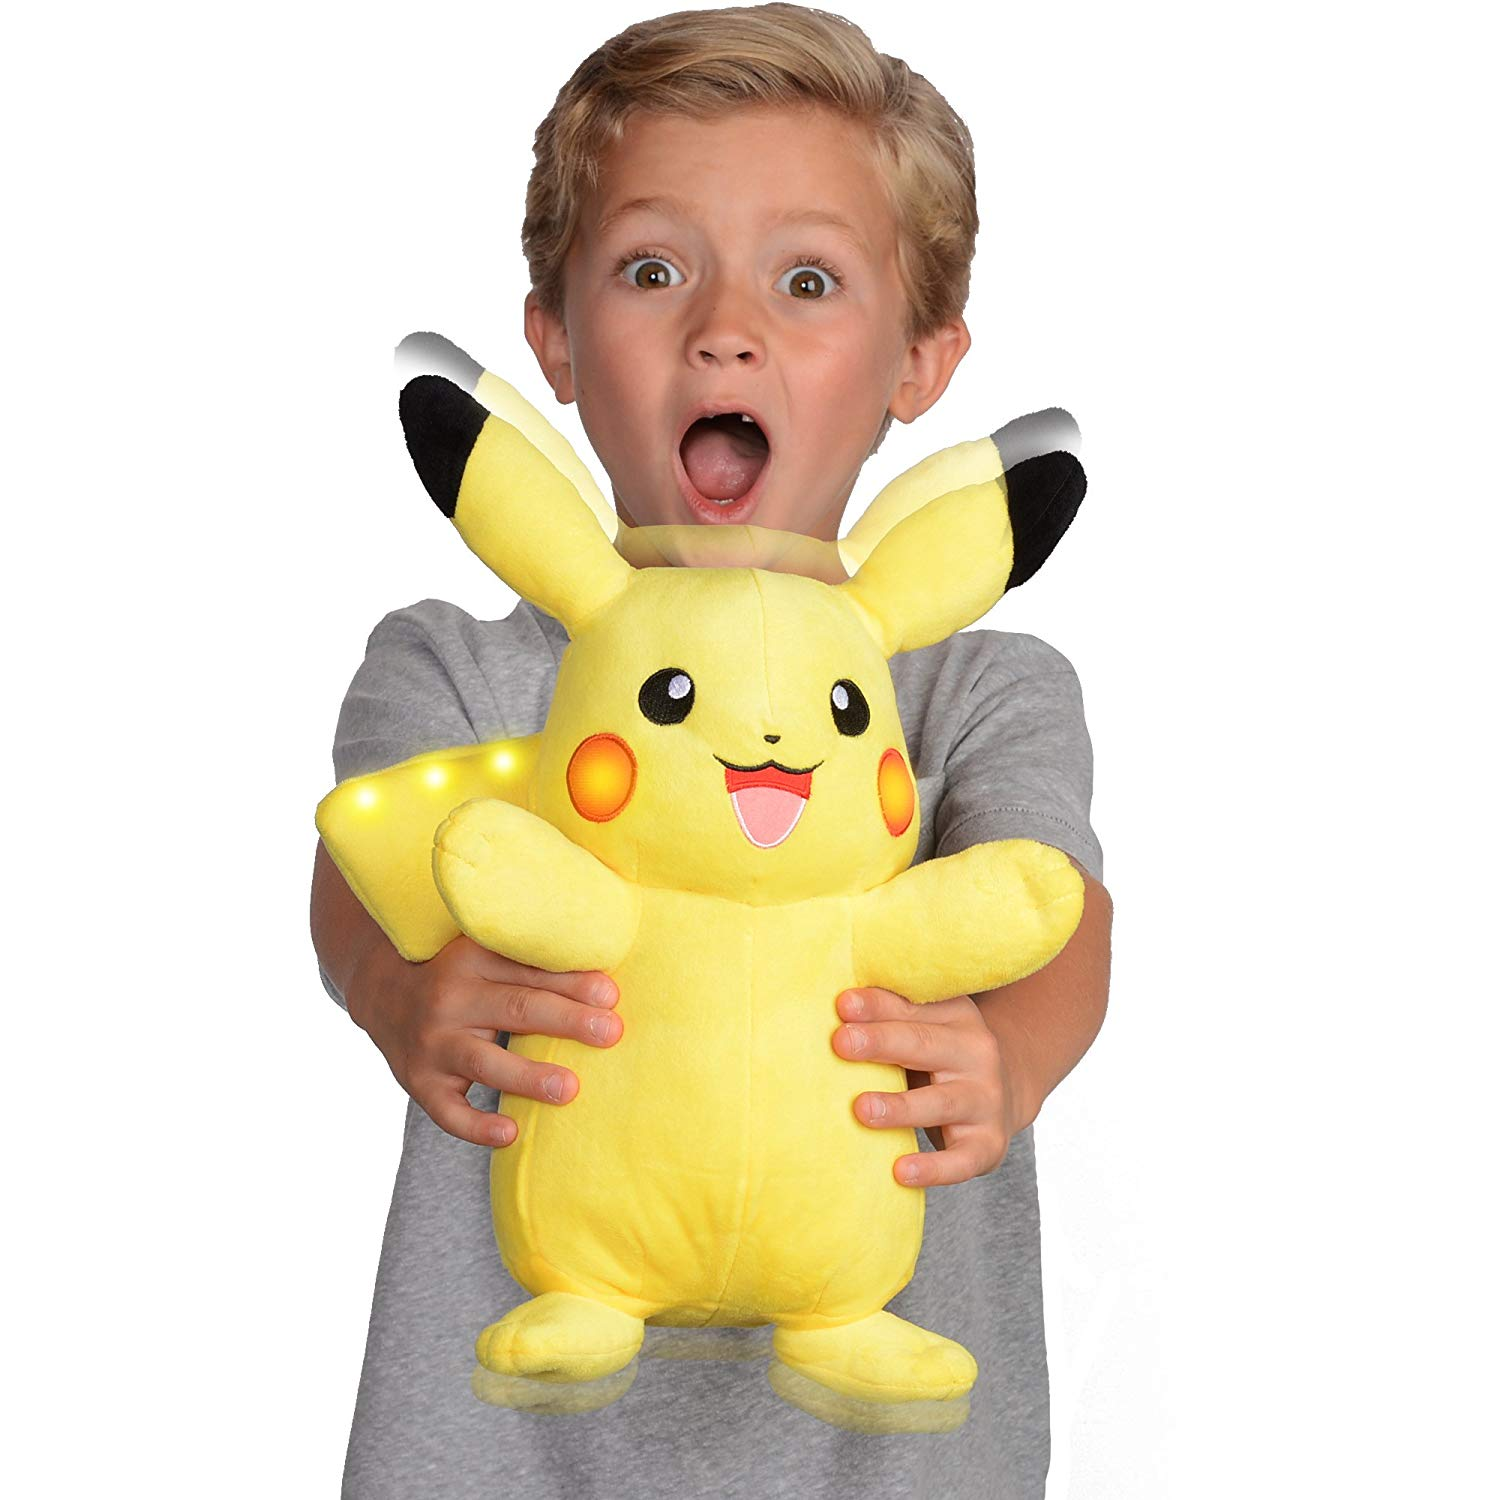 child with one of his favorite holiday toys, pikachu